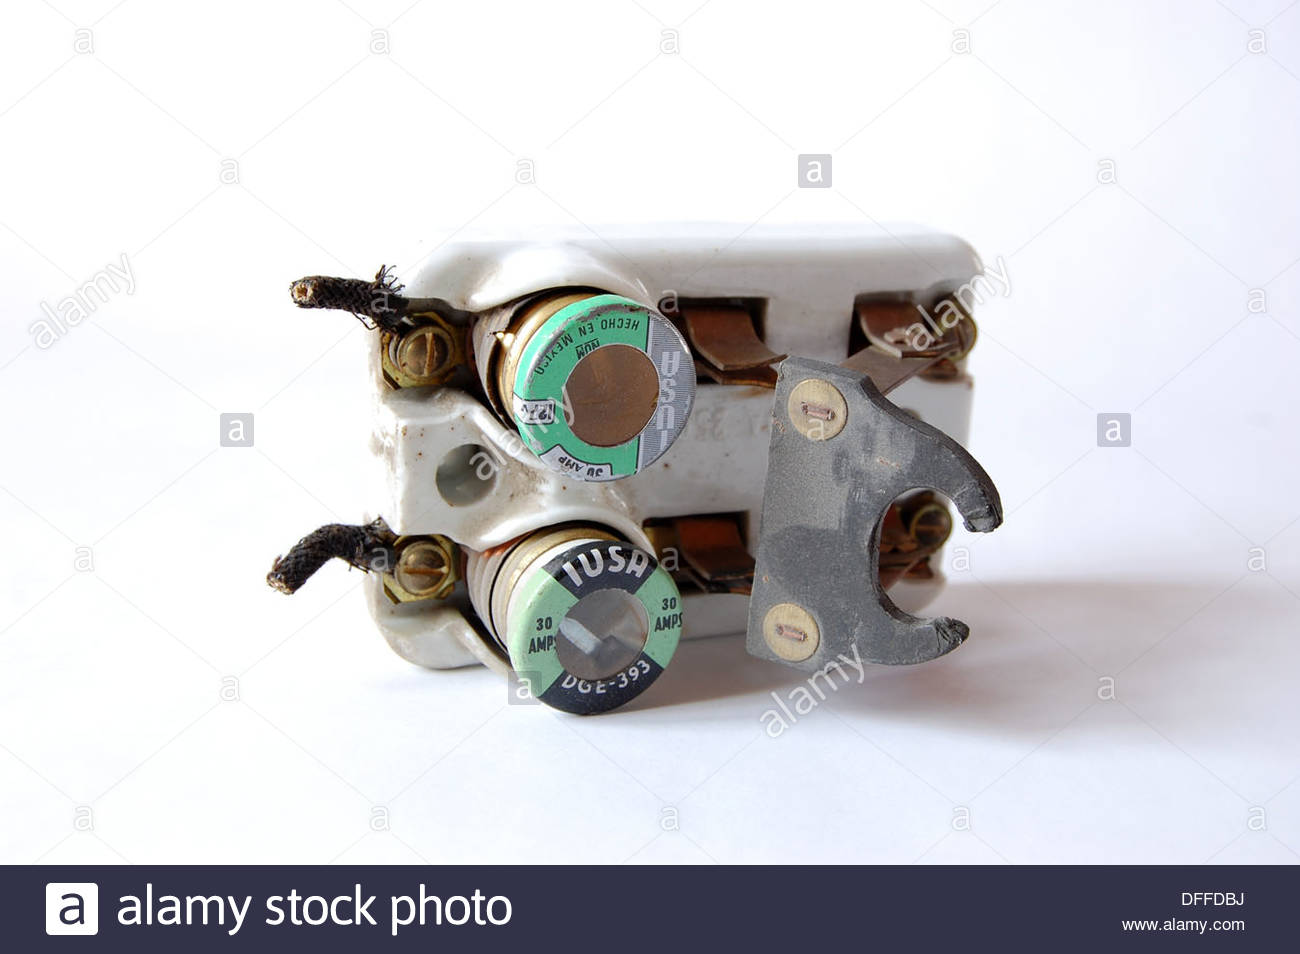 Knife Switch Fuse Box Books Of Wiring Diagram For A Goldstar Ac R6004 Diagrams Old Fuses Stock Photos Images Rh Alamy Com